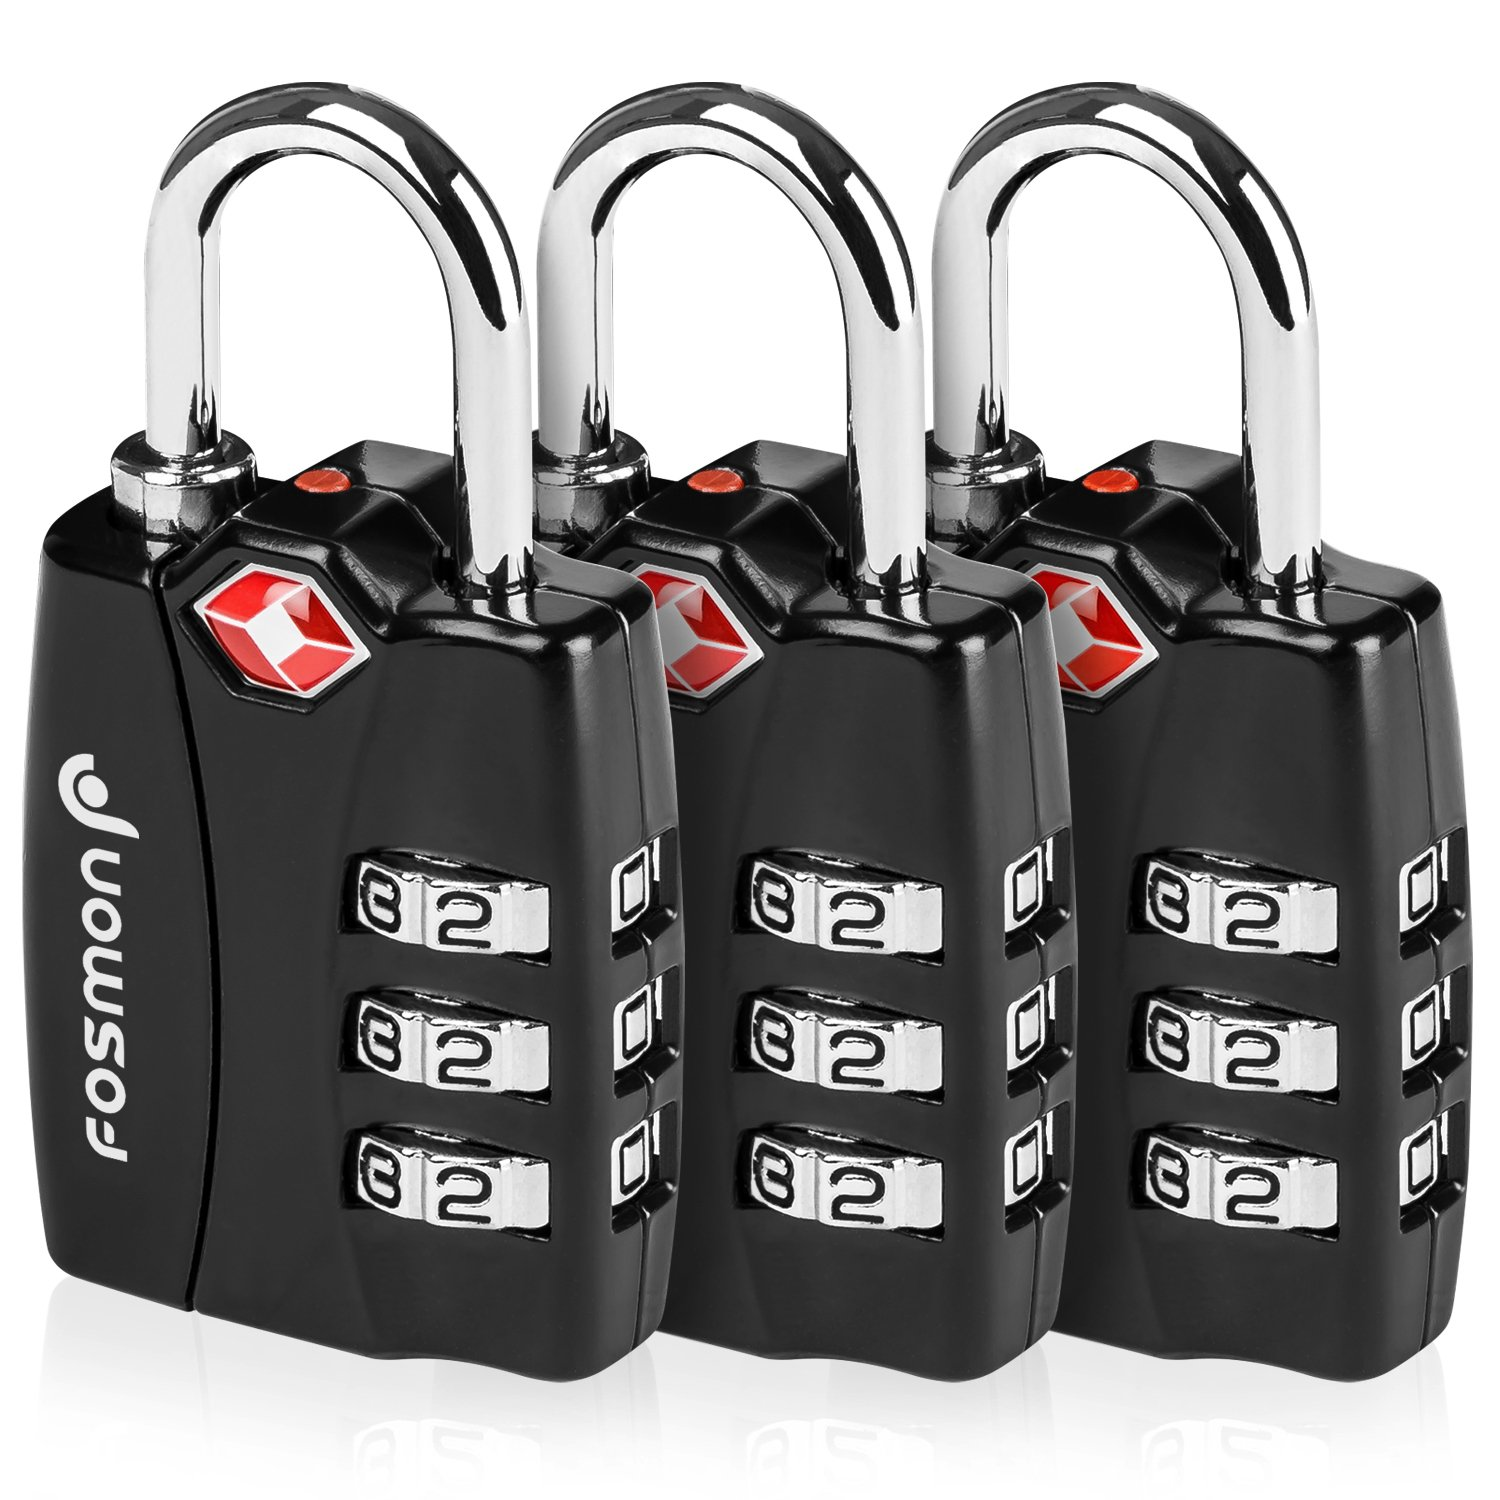 TSA Approved Luggage Locks, Fosmon (3 Pack) Open Alert Indicator 3 Digit Combination Padlock Codes with Alloy Body for Travel Bag, Suit Case, Lockers, Gym, Bike Locks or Other by Fosmon